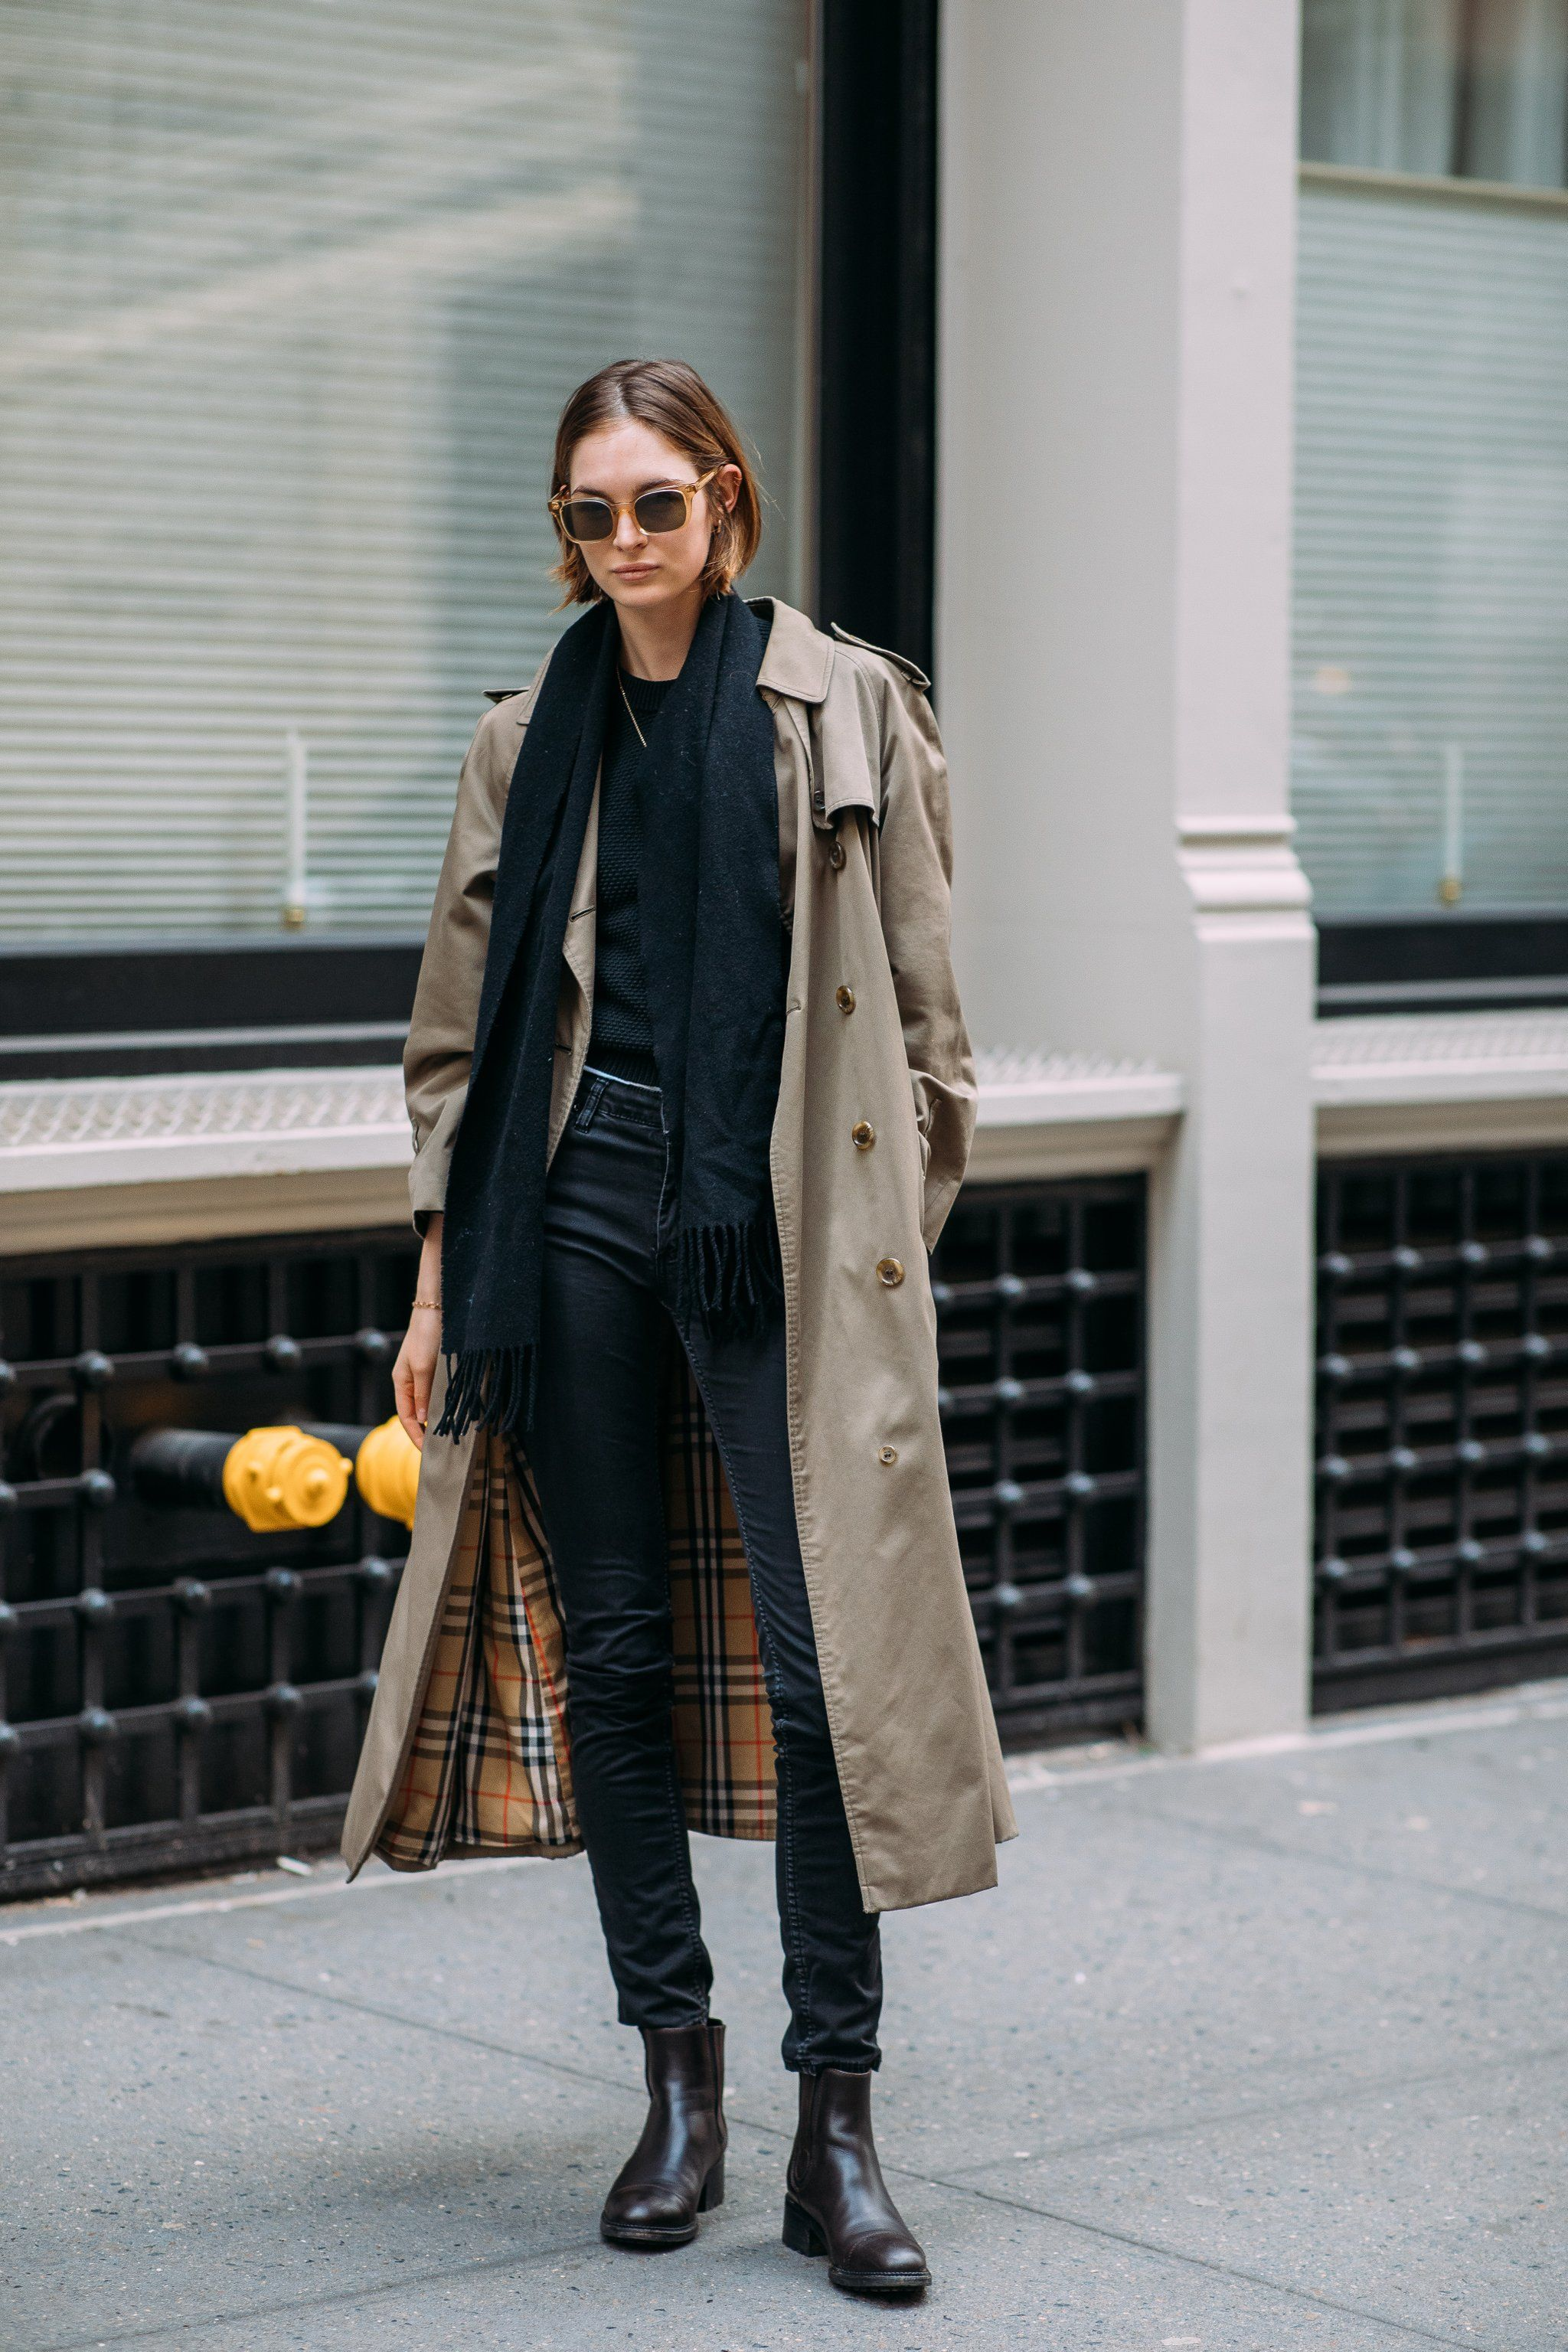 Day 7 | Street style looks, Fashion, Coat outfits